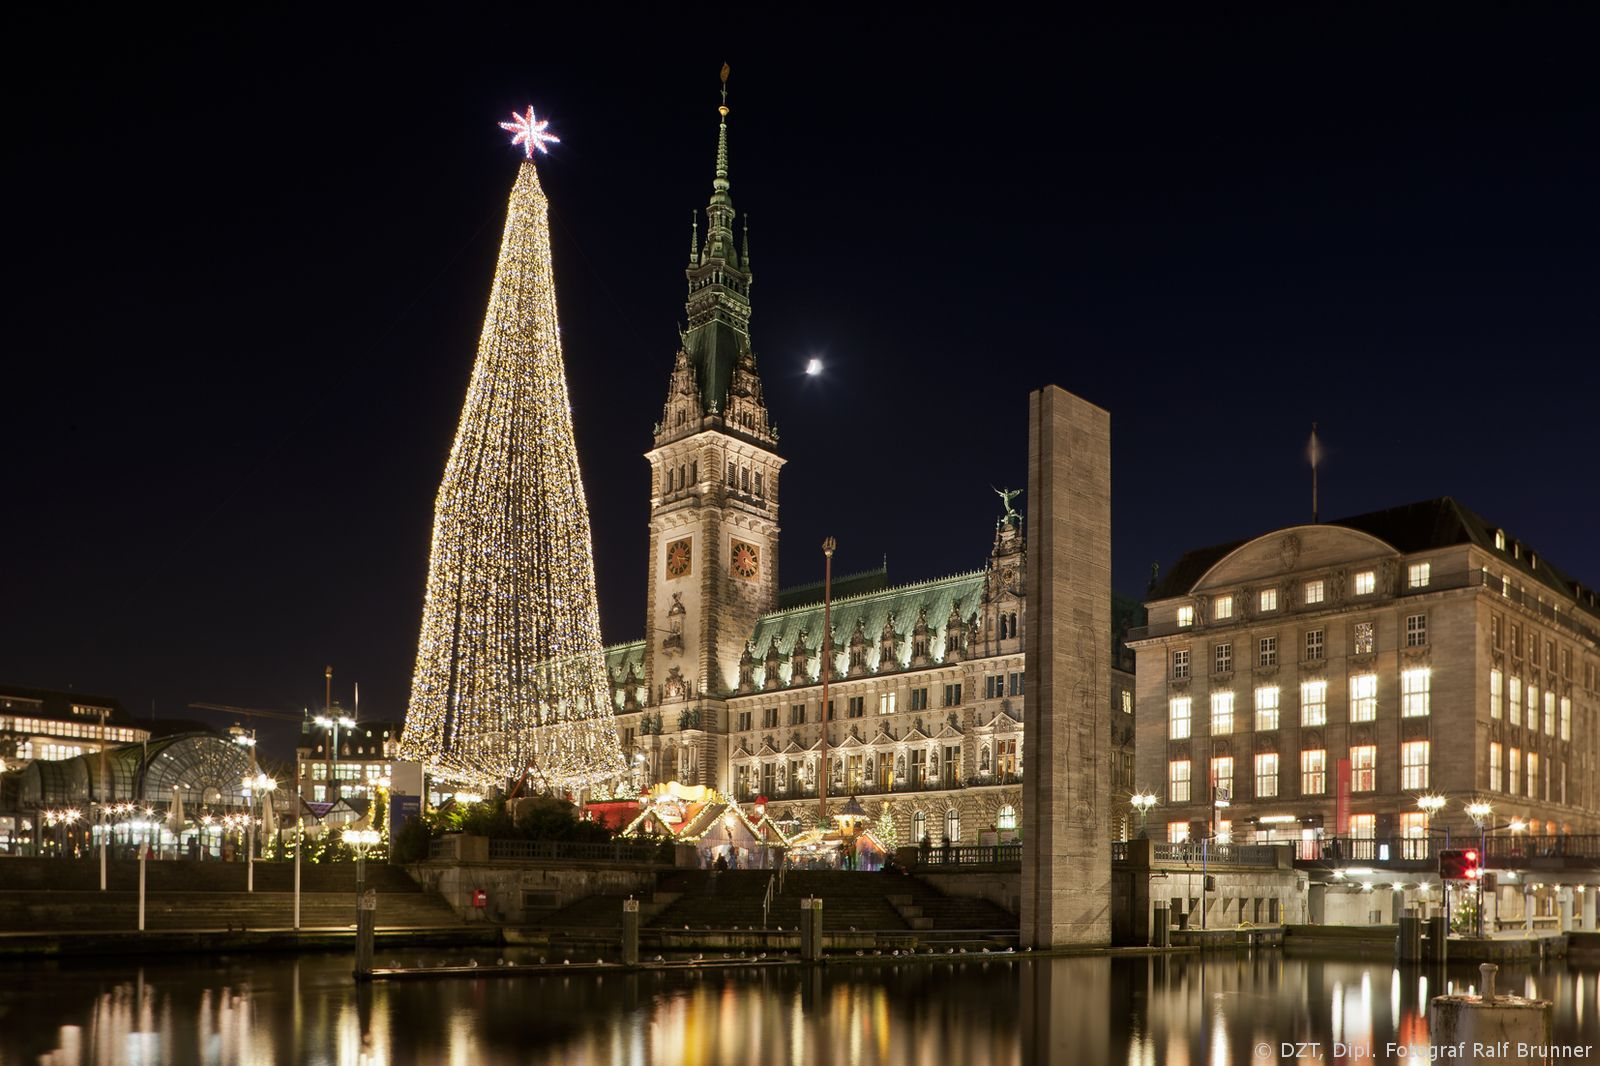 Christmas holiday charm in Hamburg. #joingermantradition Enter the #InspiredBy Pinterest Contest for your chance to win a trip to Germany!